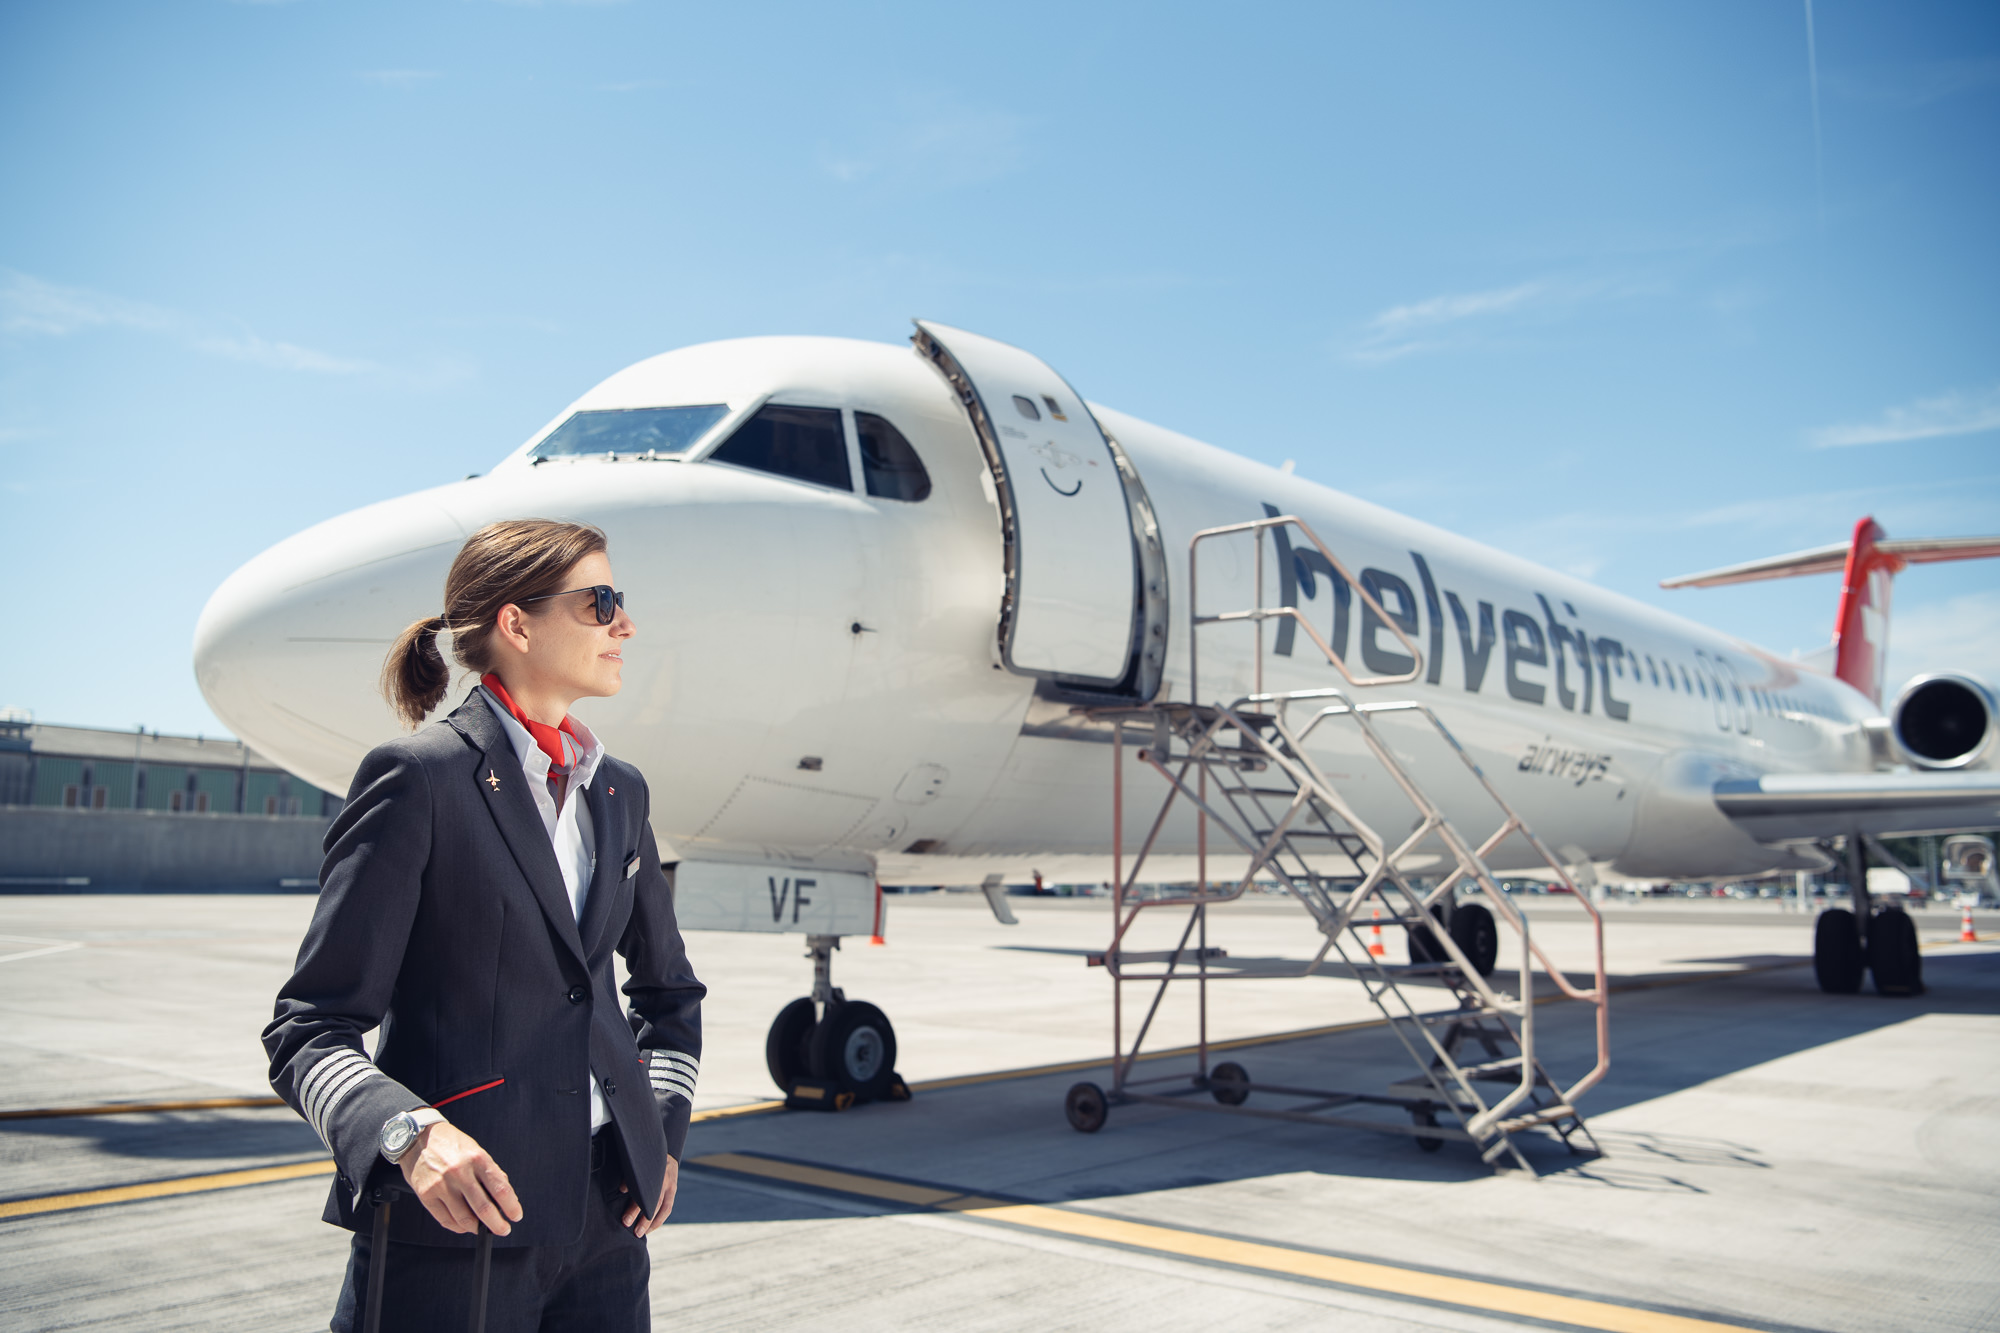 Swiss pilot Nadine Hachen in front of Helvetic Airways plane in Zurich airport